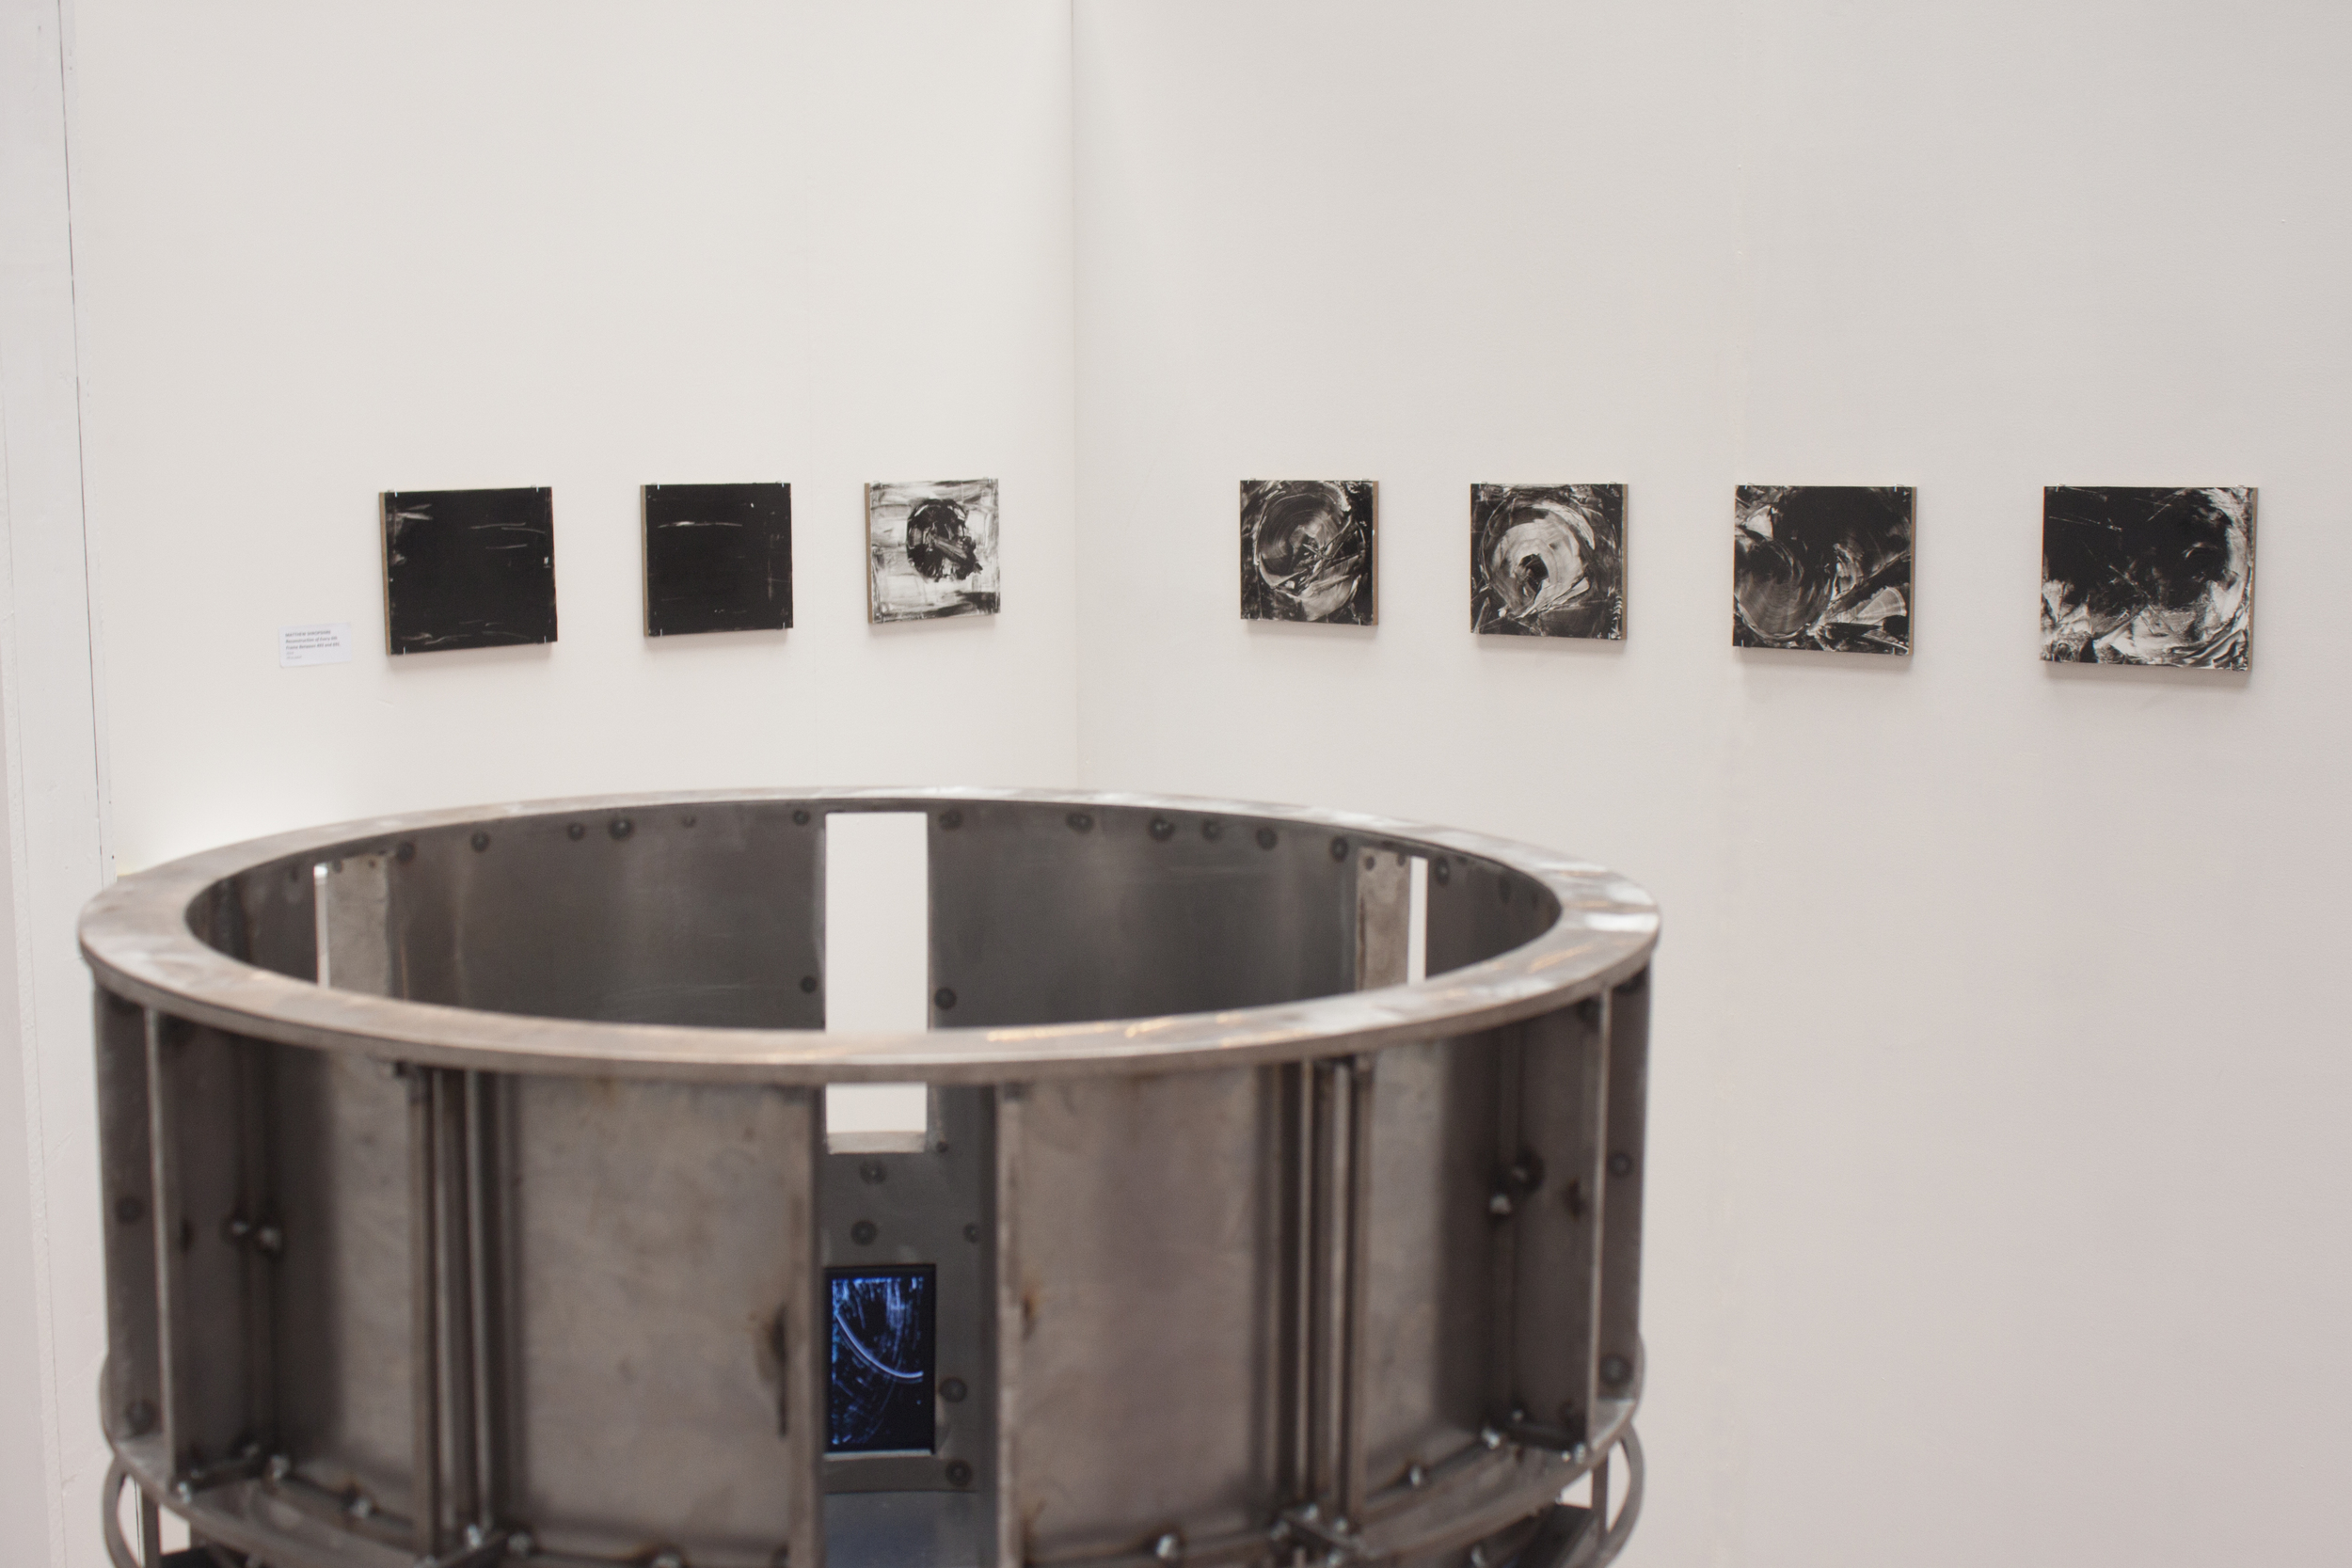 Installation view from The Cyclorama Show: 2014 MFA Thesis Exhibition, School of the Museum of Fine Arts, Boston